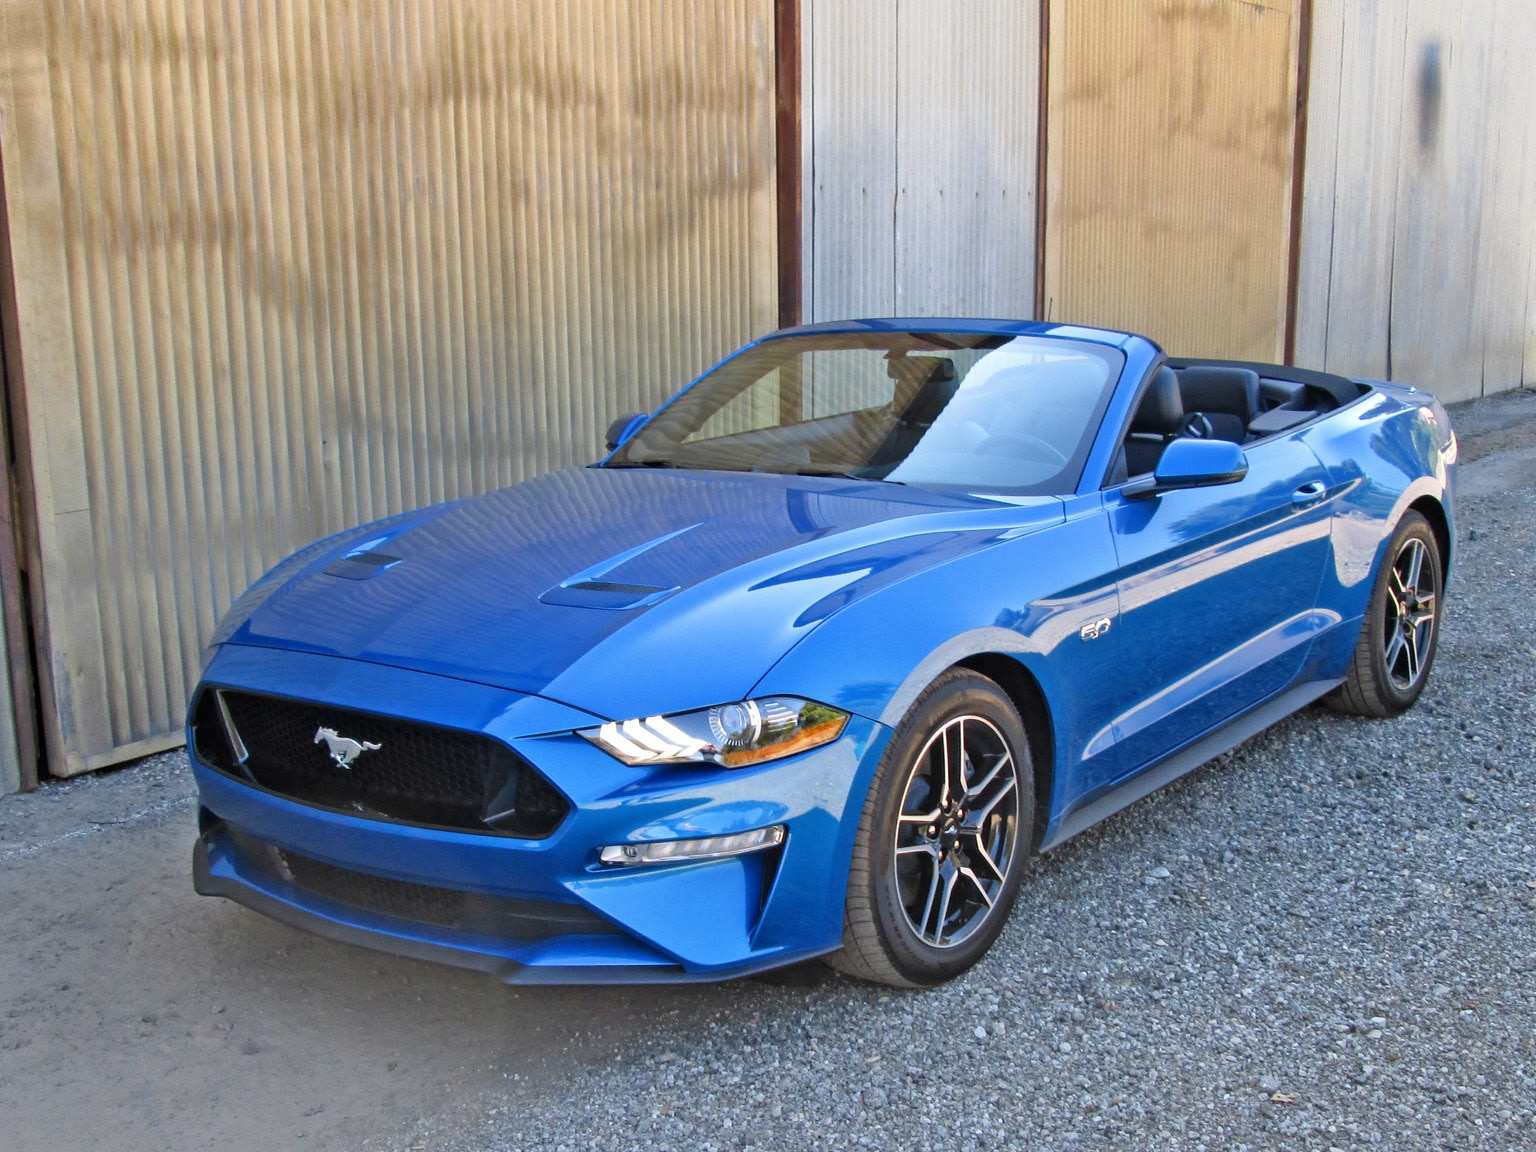 87 Concept of 2019 Ford Gt Mustang Speed Test by 2019 Ford Gt Mustang